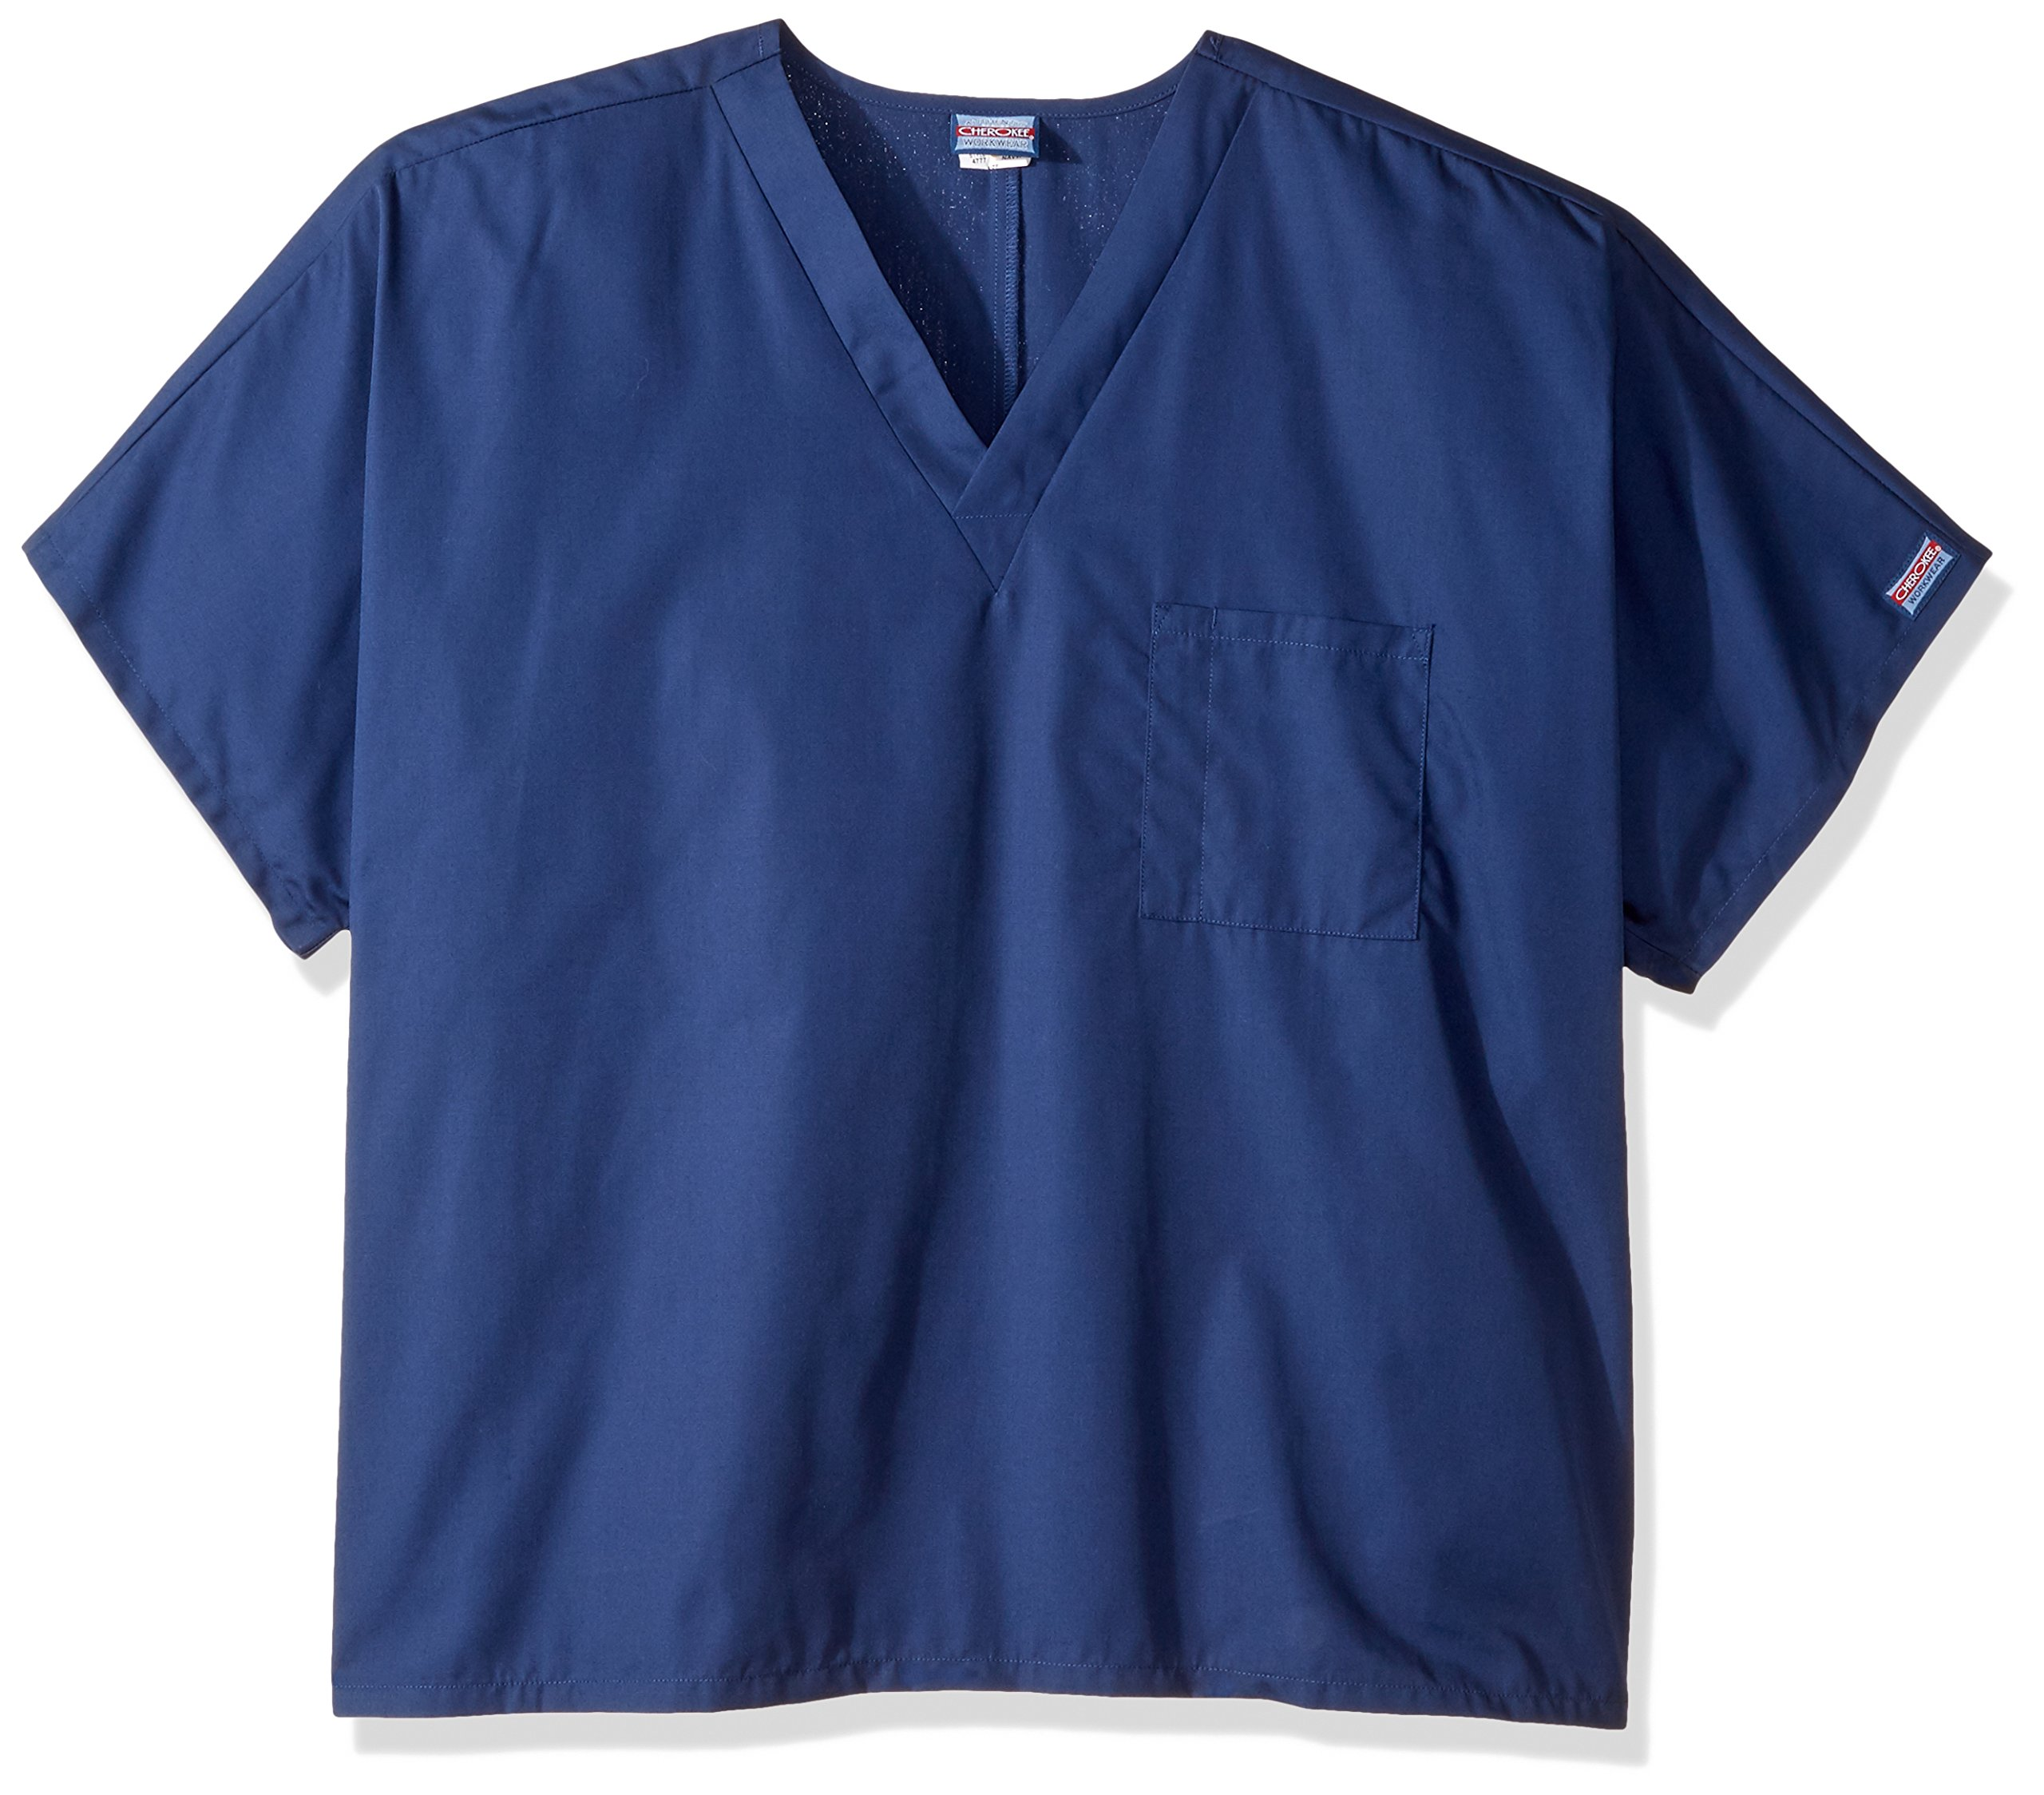 Cherokee Workwear Originals Unisex V-Neck 1-Pocket Solid Scrub Top Xx-Large Navy